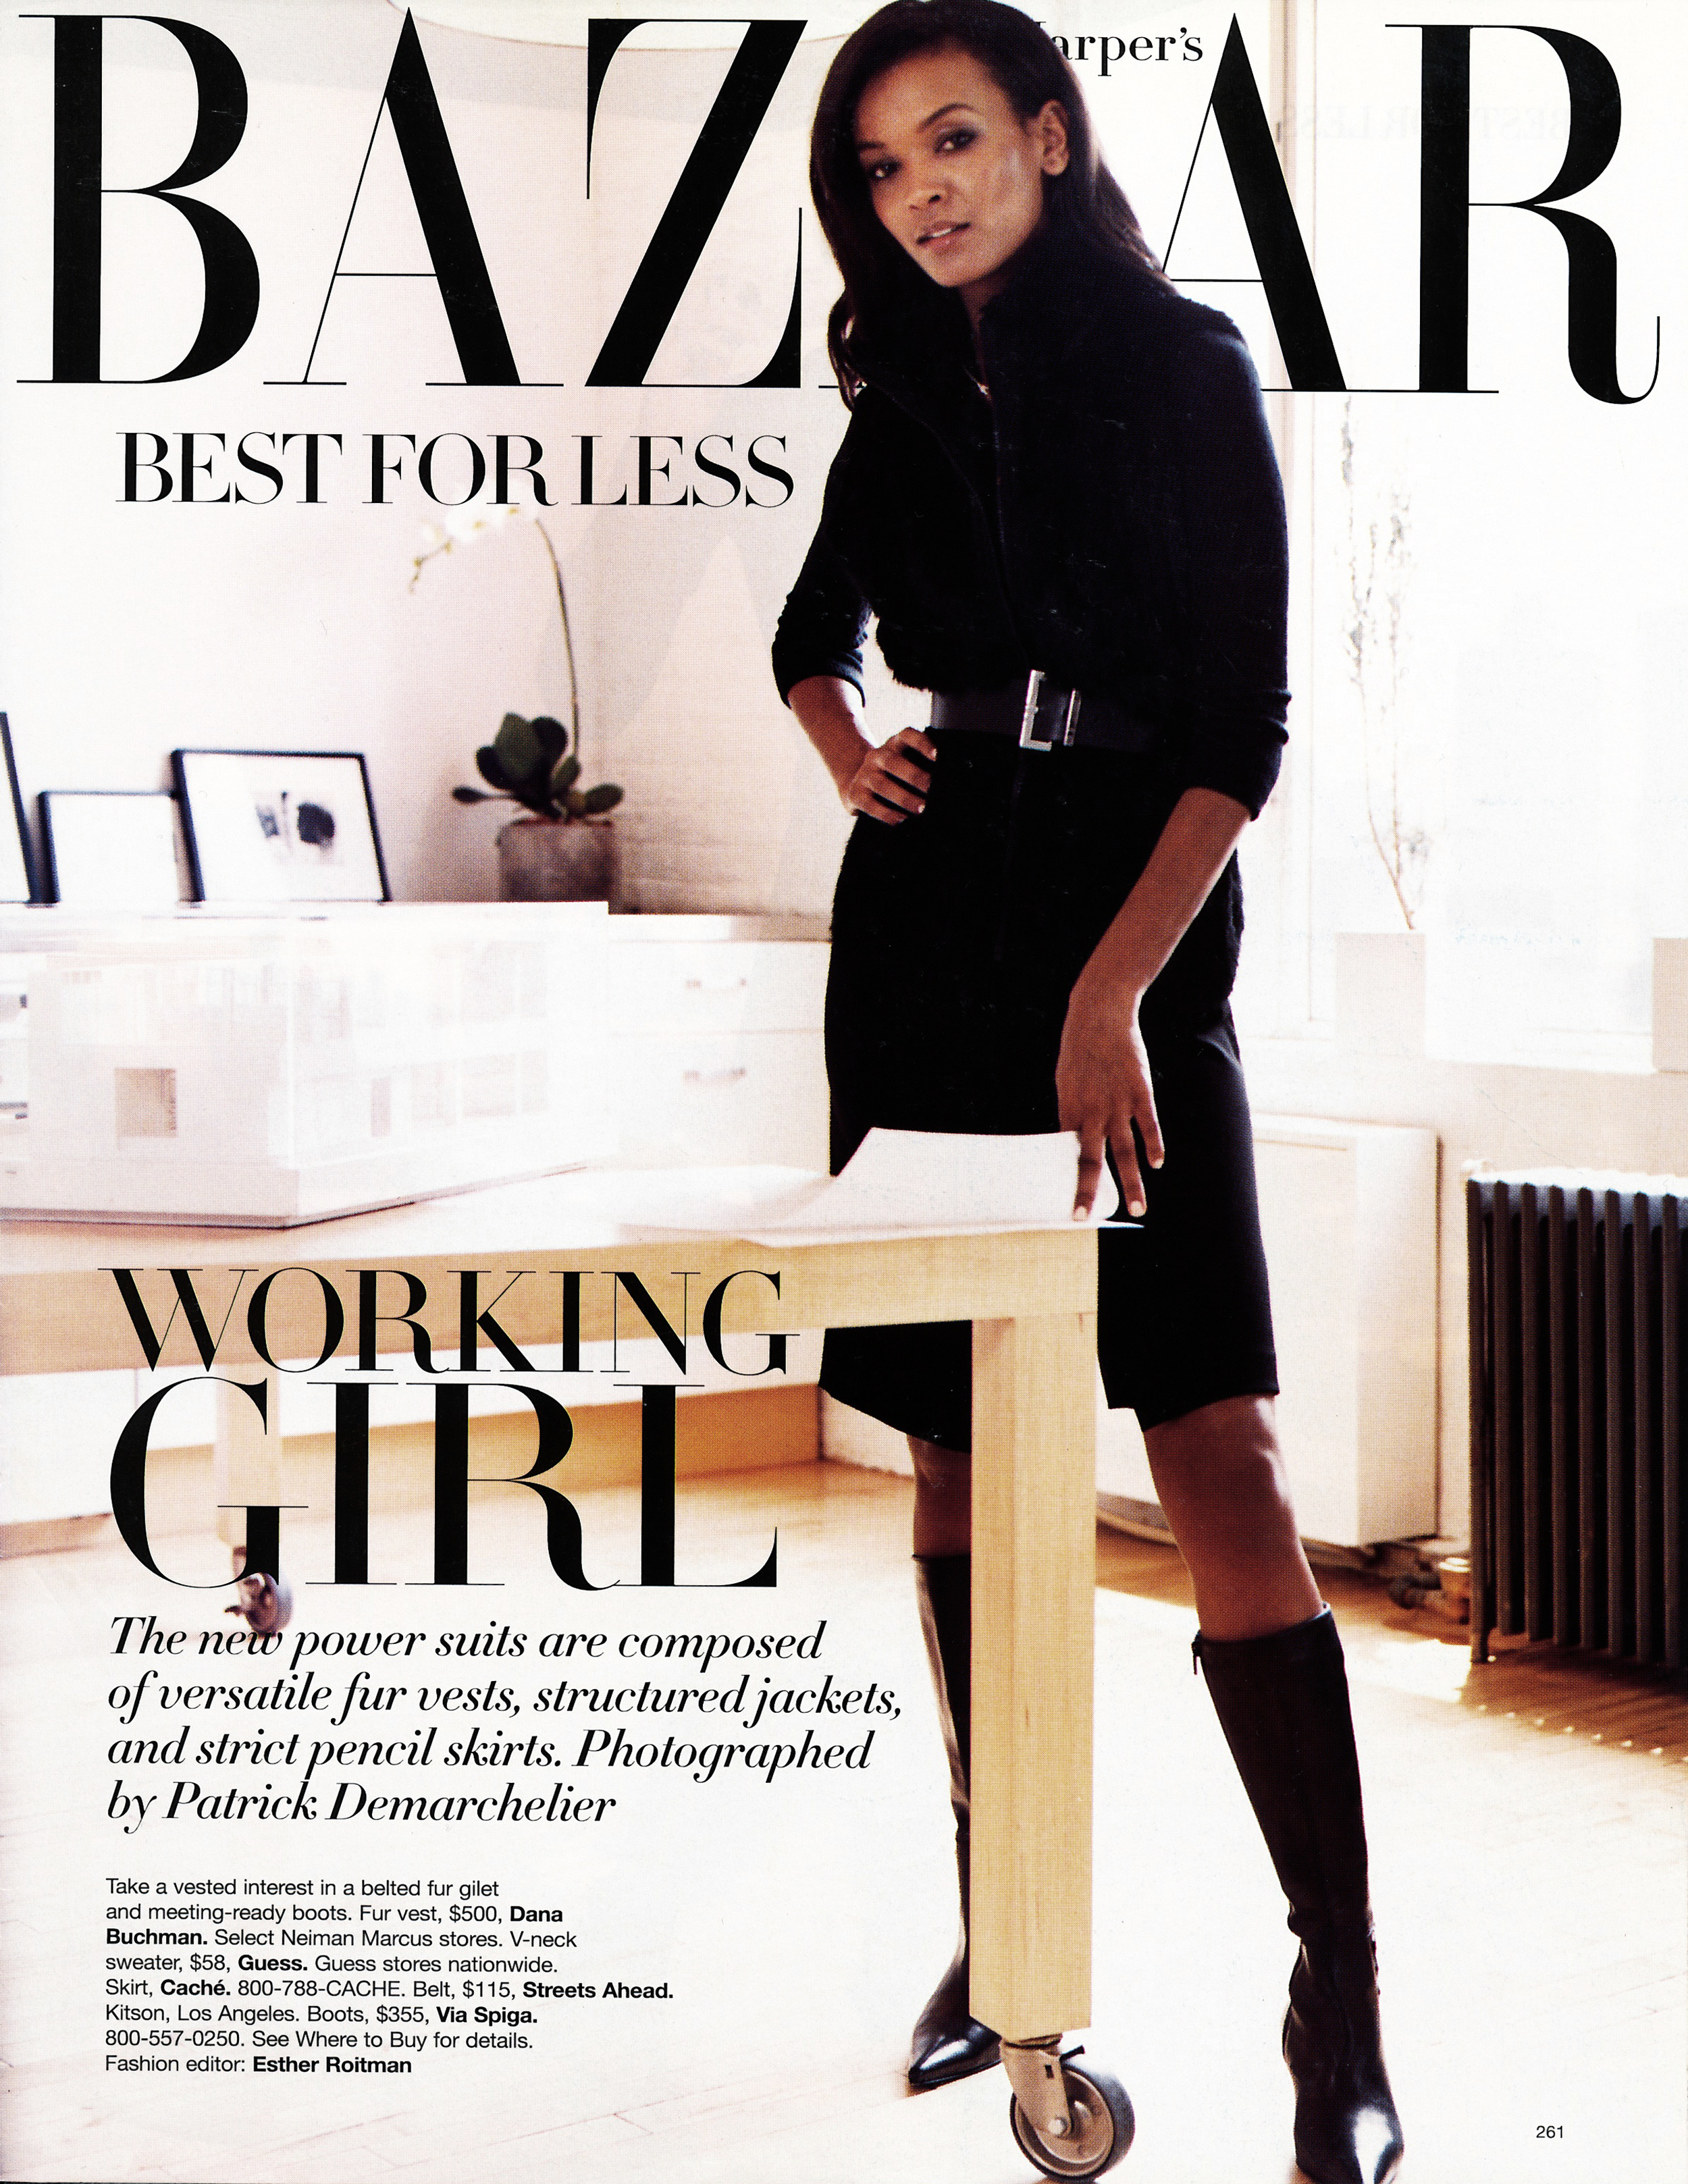 <html>Bazaar<p>PGA loft photo shoot</html>